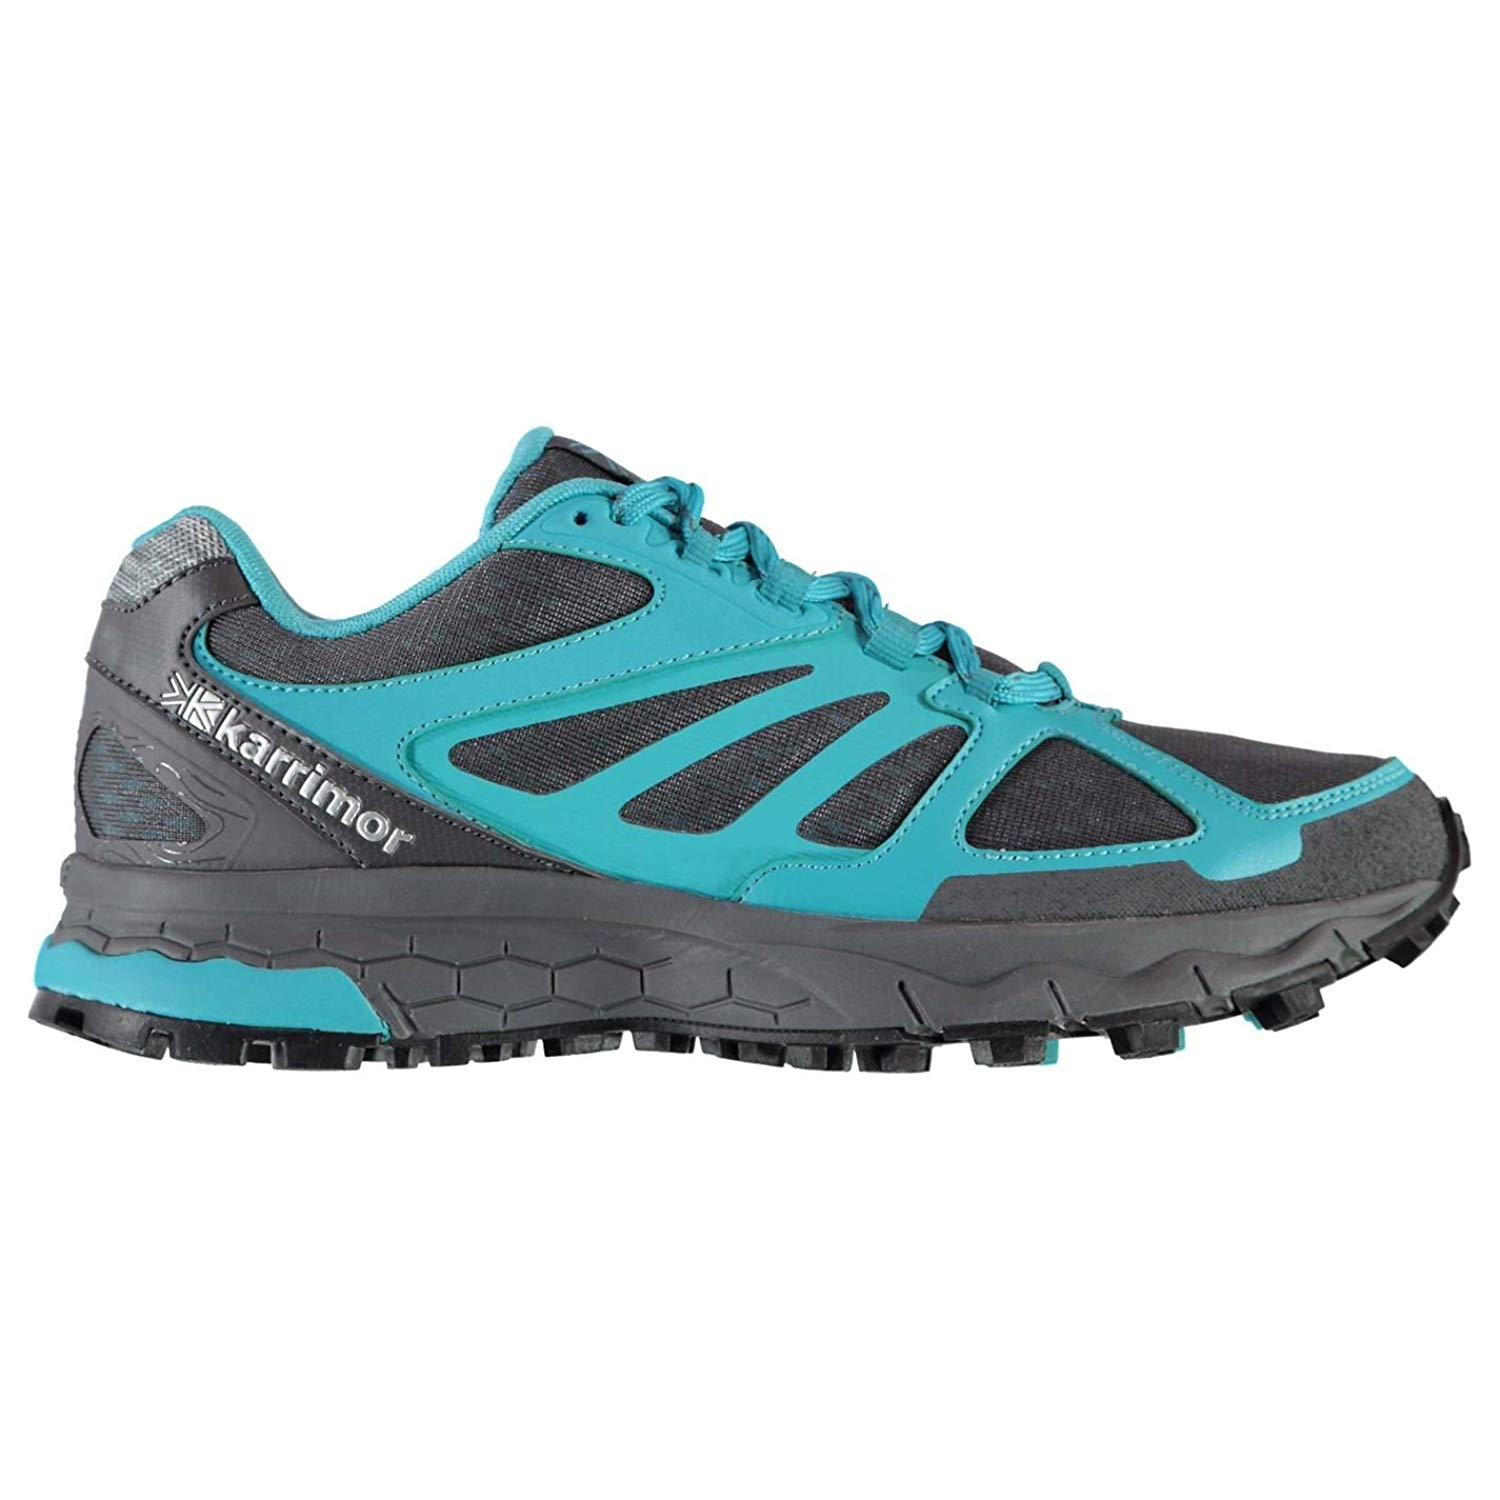 4578817f8ca Get Quotations · Karrimor Womens Tempo 5 Trail Running Shoes Lace up